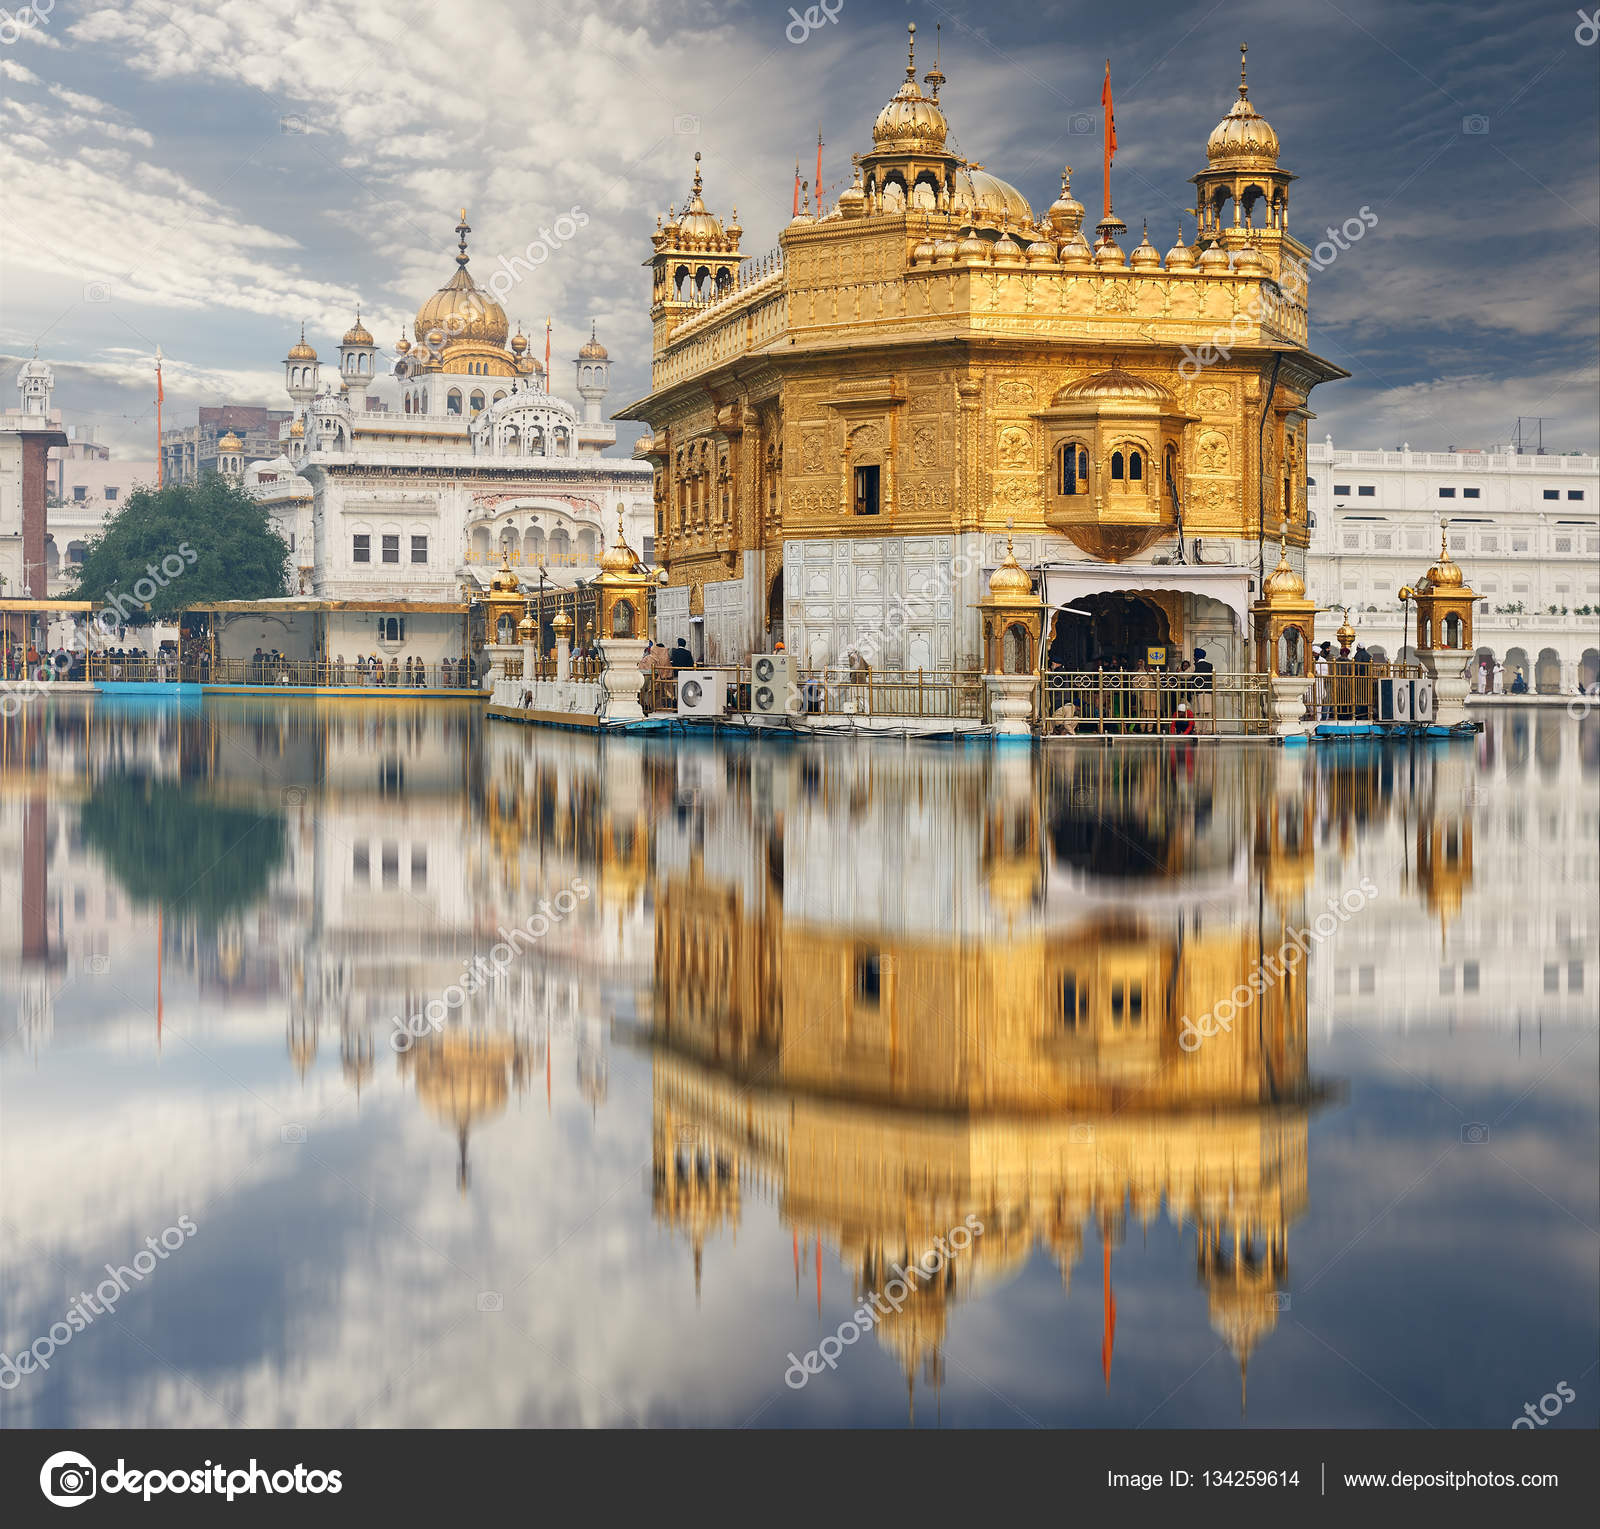 the golden temple, located in amritsar, punjab, india. — stock photo